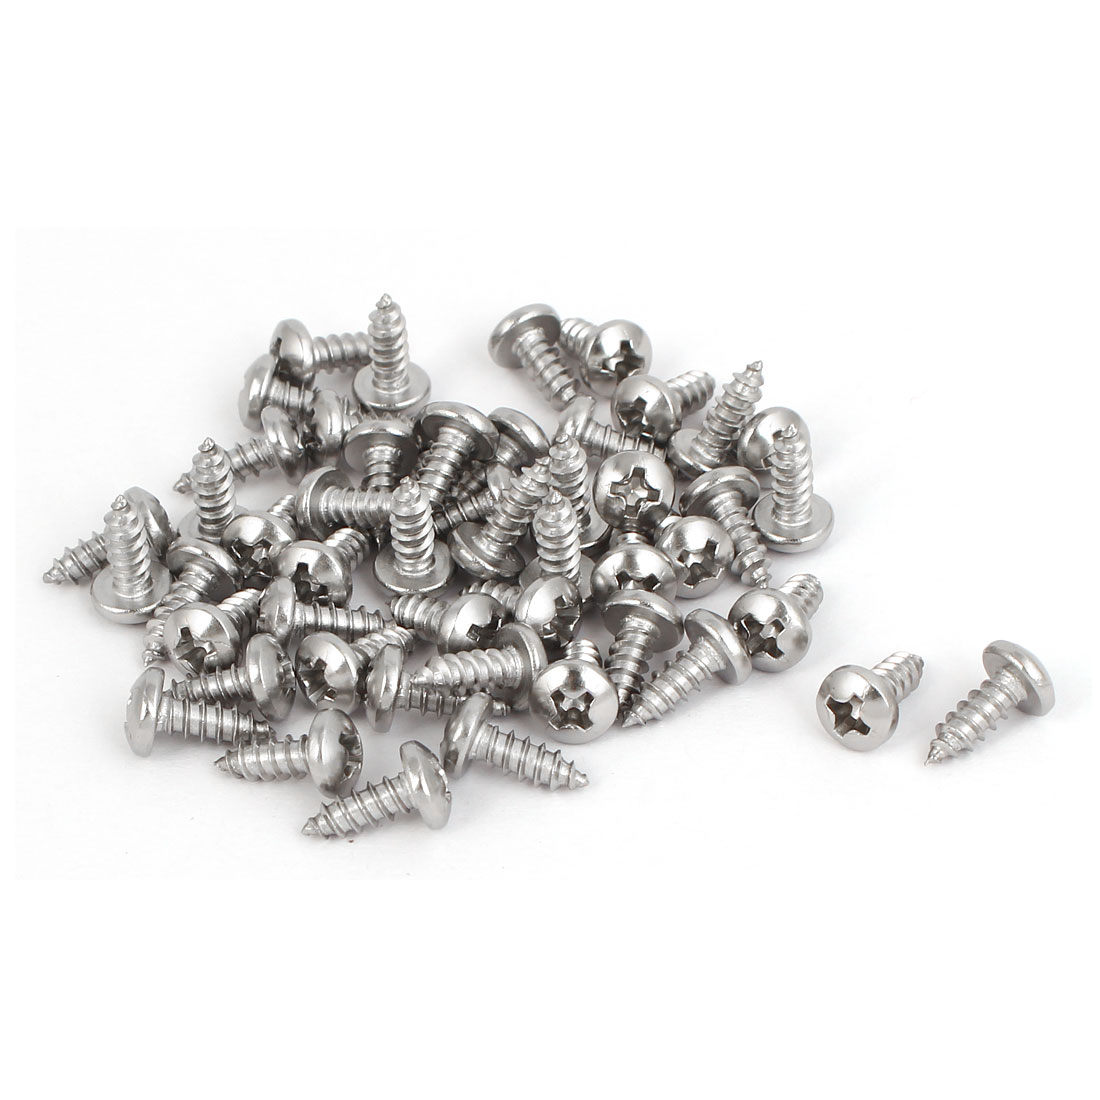 M3.5x9.5mm 316 Stainless Steel Phillips Drive Pan Head Self Tapping Screws 50pcs